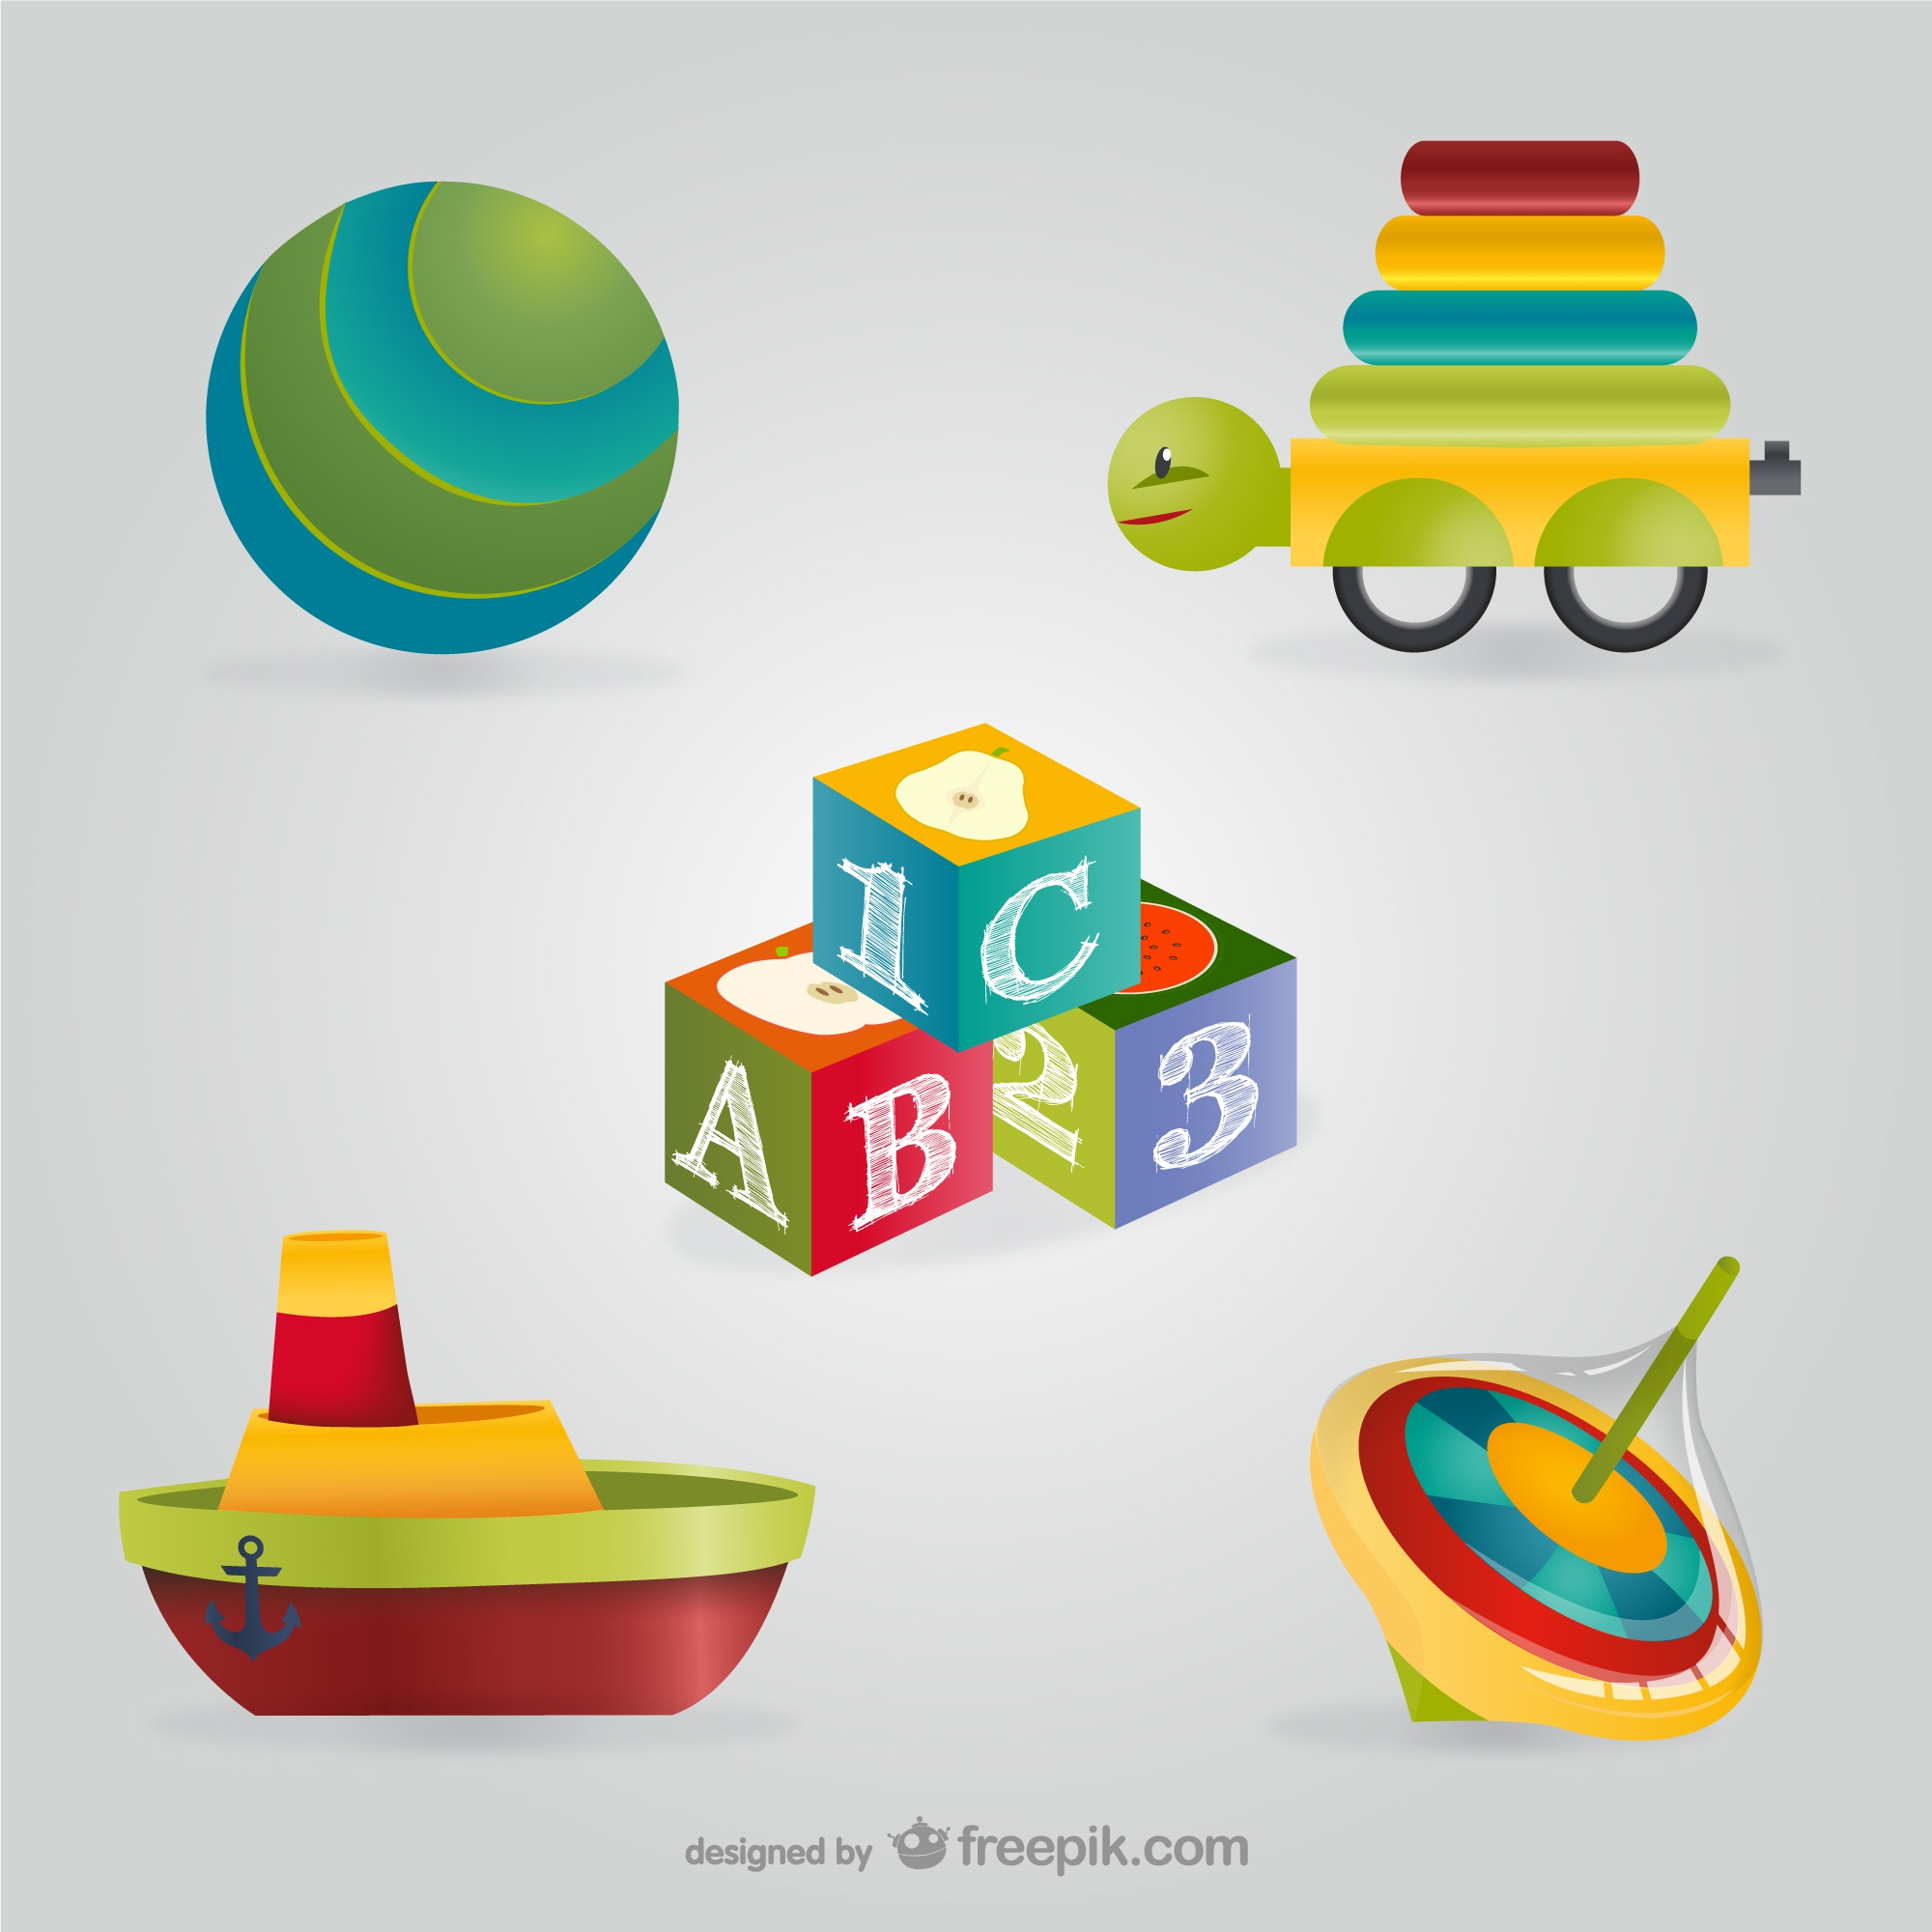 Toys and games vector